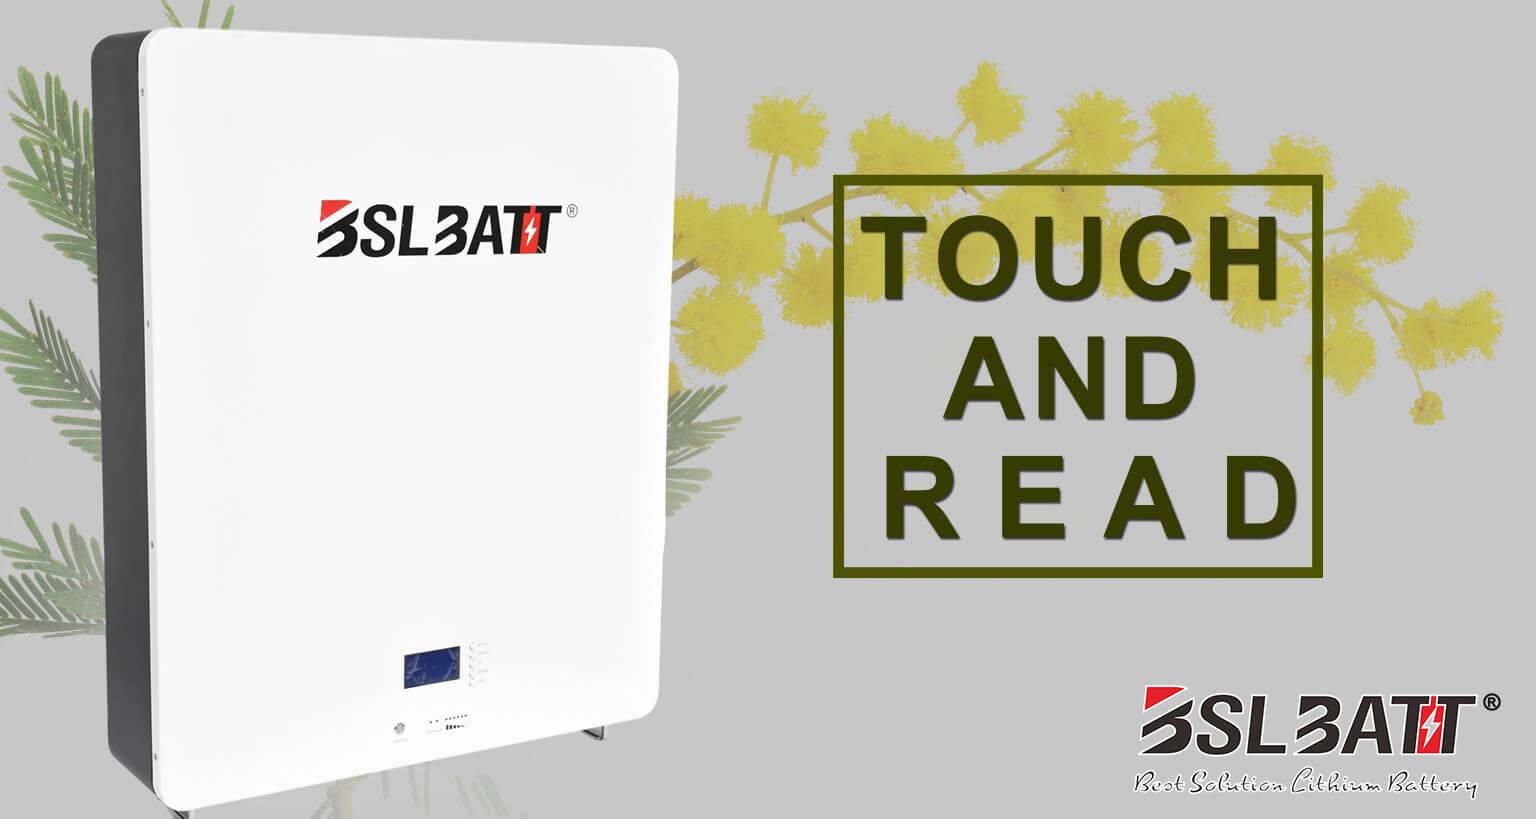 BSLBATT POWERWALL: BATTERY SAFETY OVERVIEW